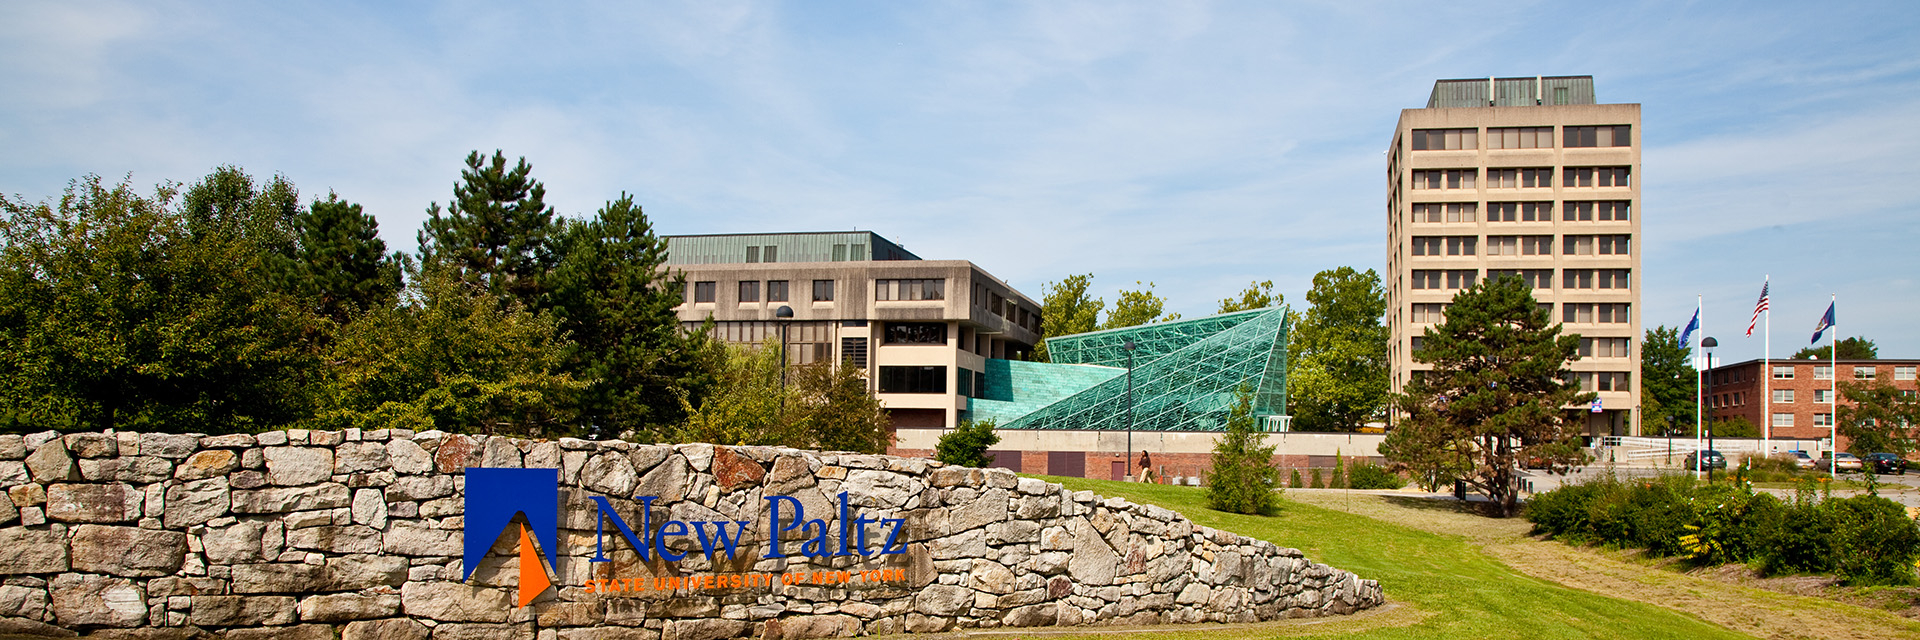 Suny New Paltz - Payroll With Suny New Paltz School Year Calendar